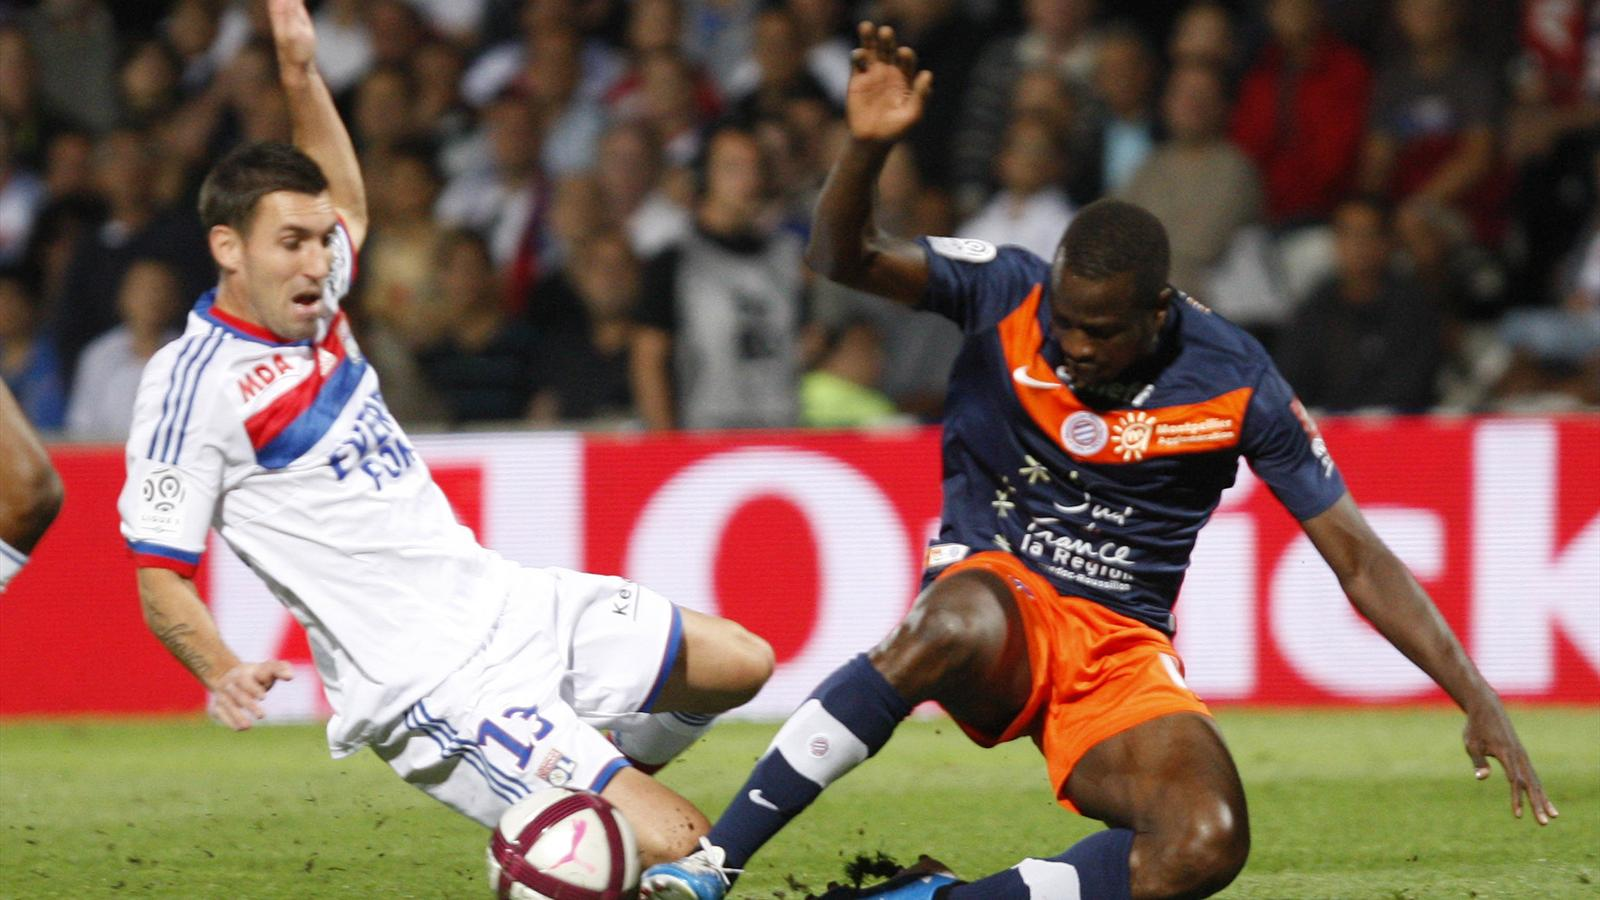 Match Olympique de Lyon vs Montpellier HSC en direct streaming live